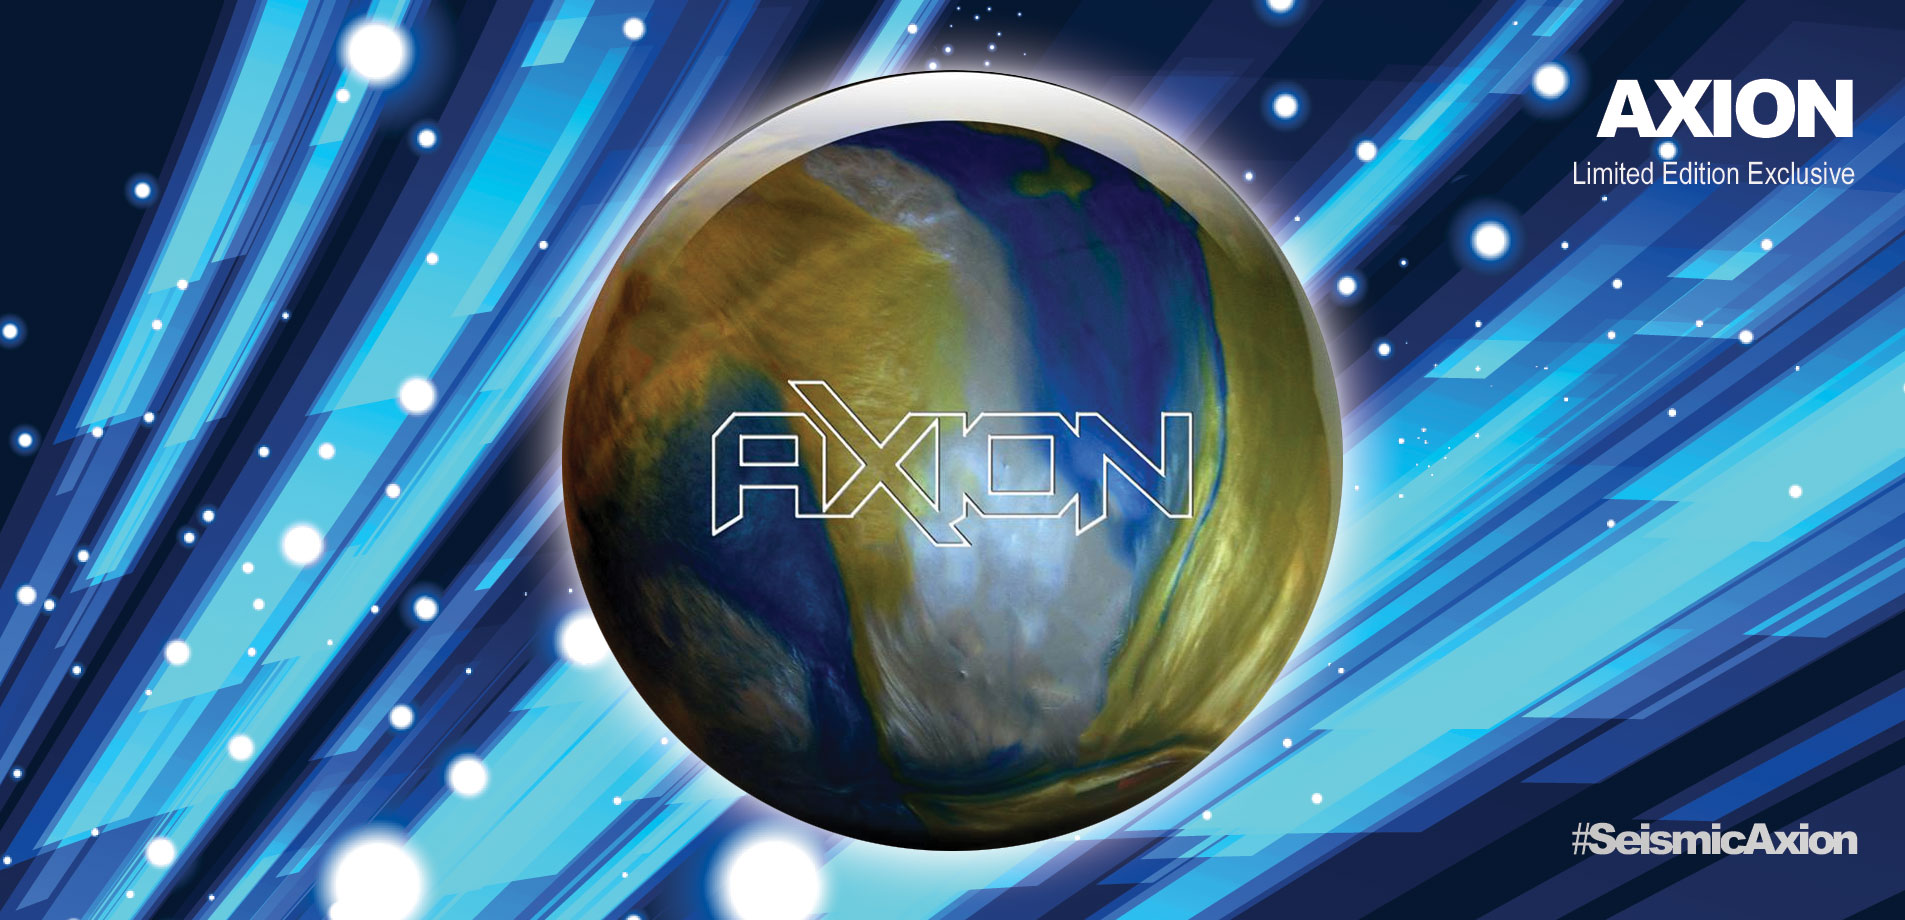 seismic axion